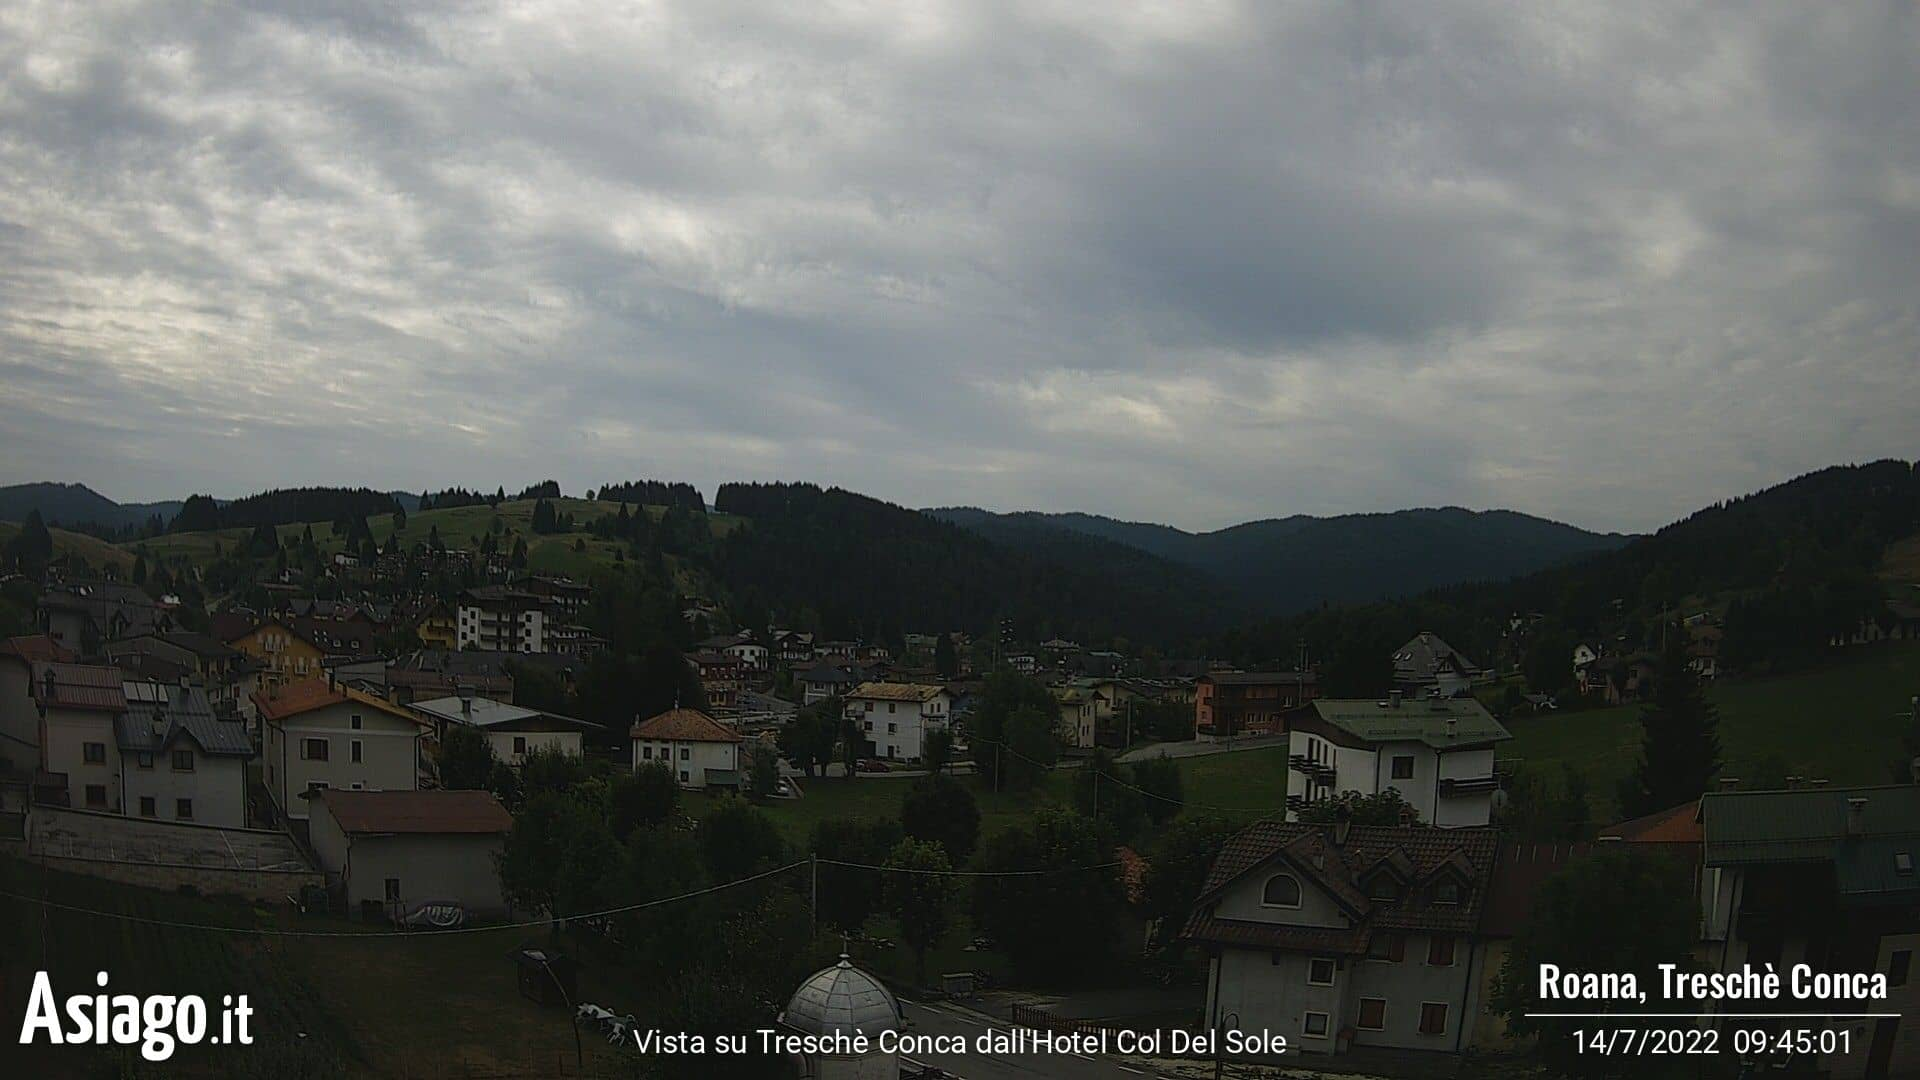 Webcam live di Asiago.It dall'Hotel Col del Sole